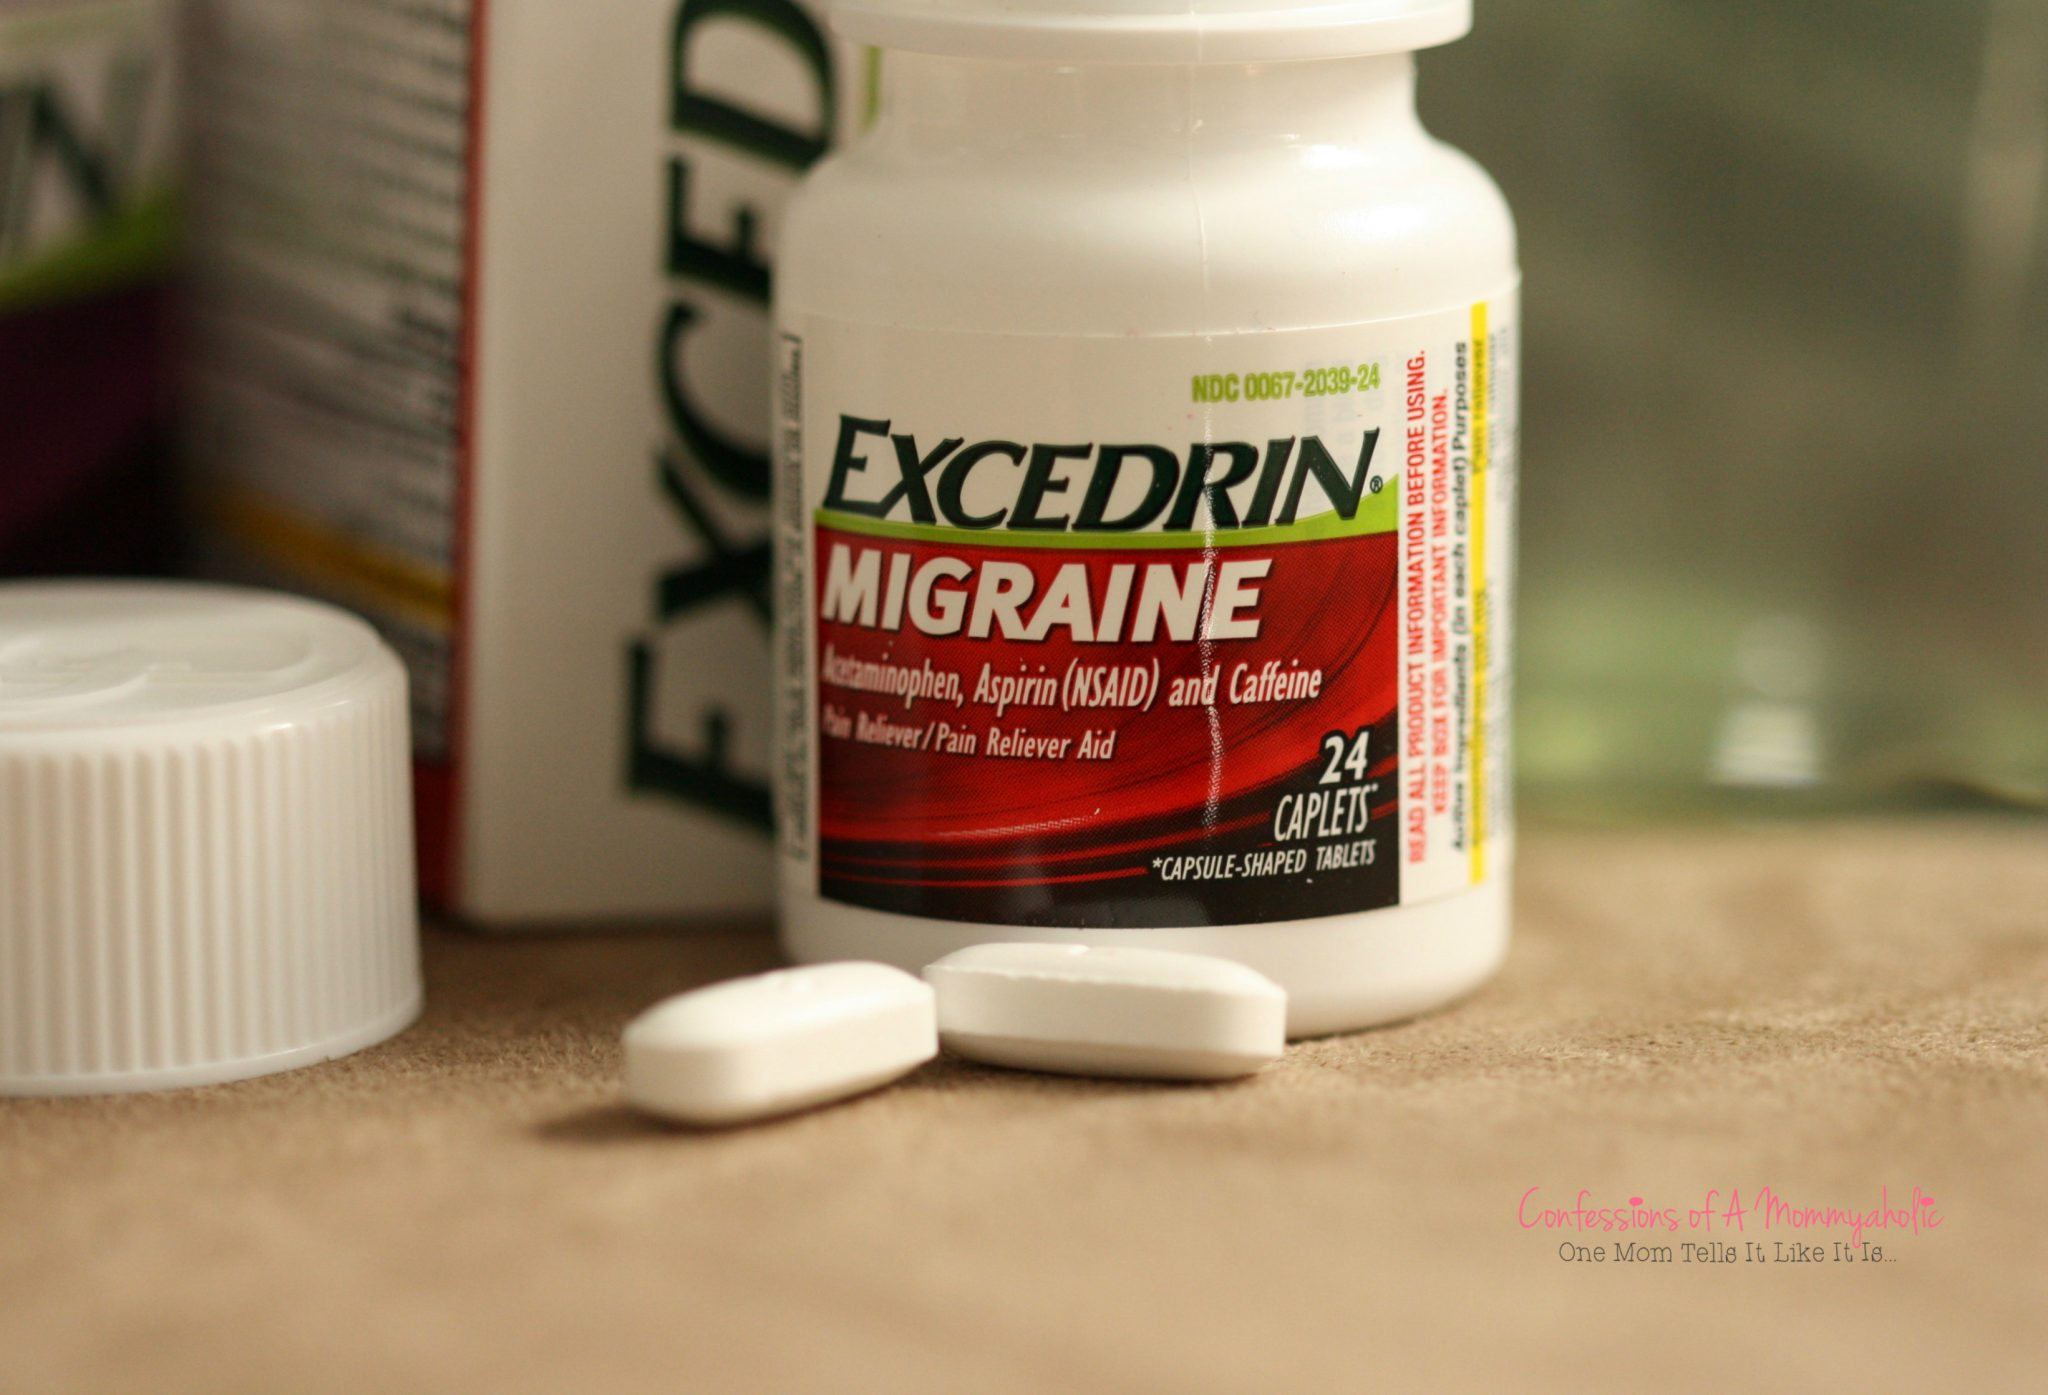 Excedrin 2 Watermarked